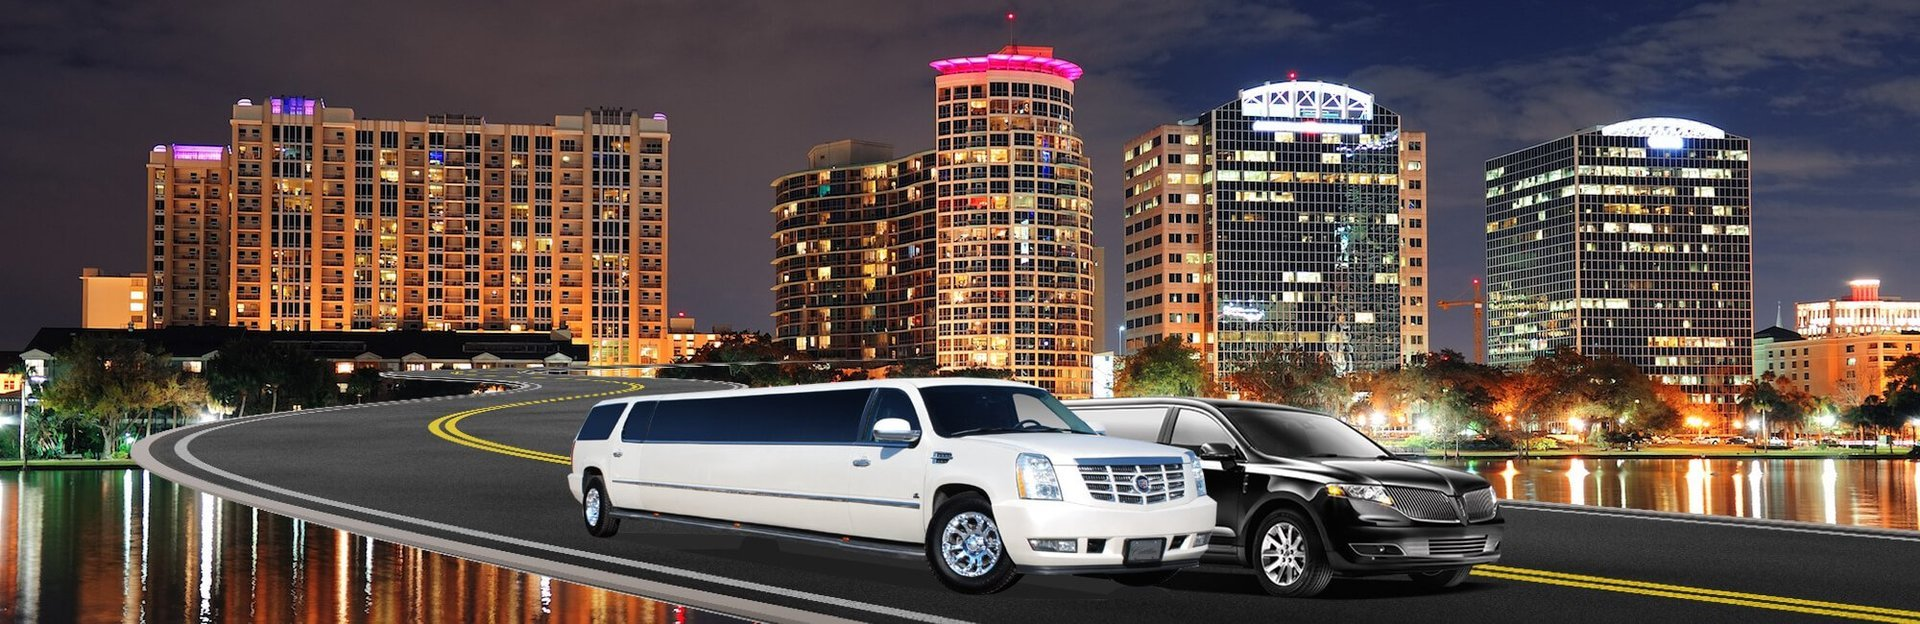 Limo Service Contact Us